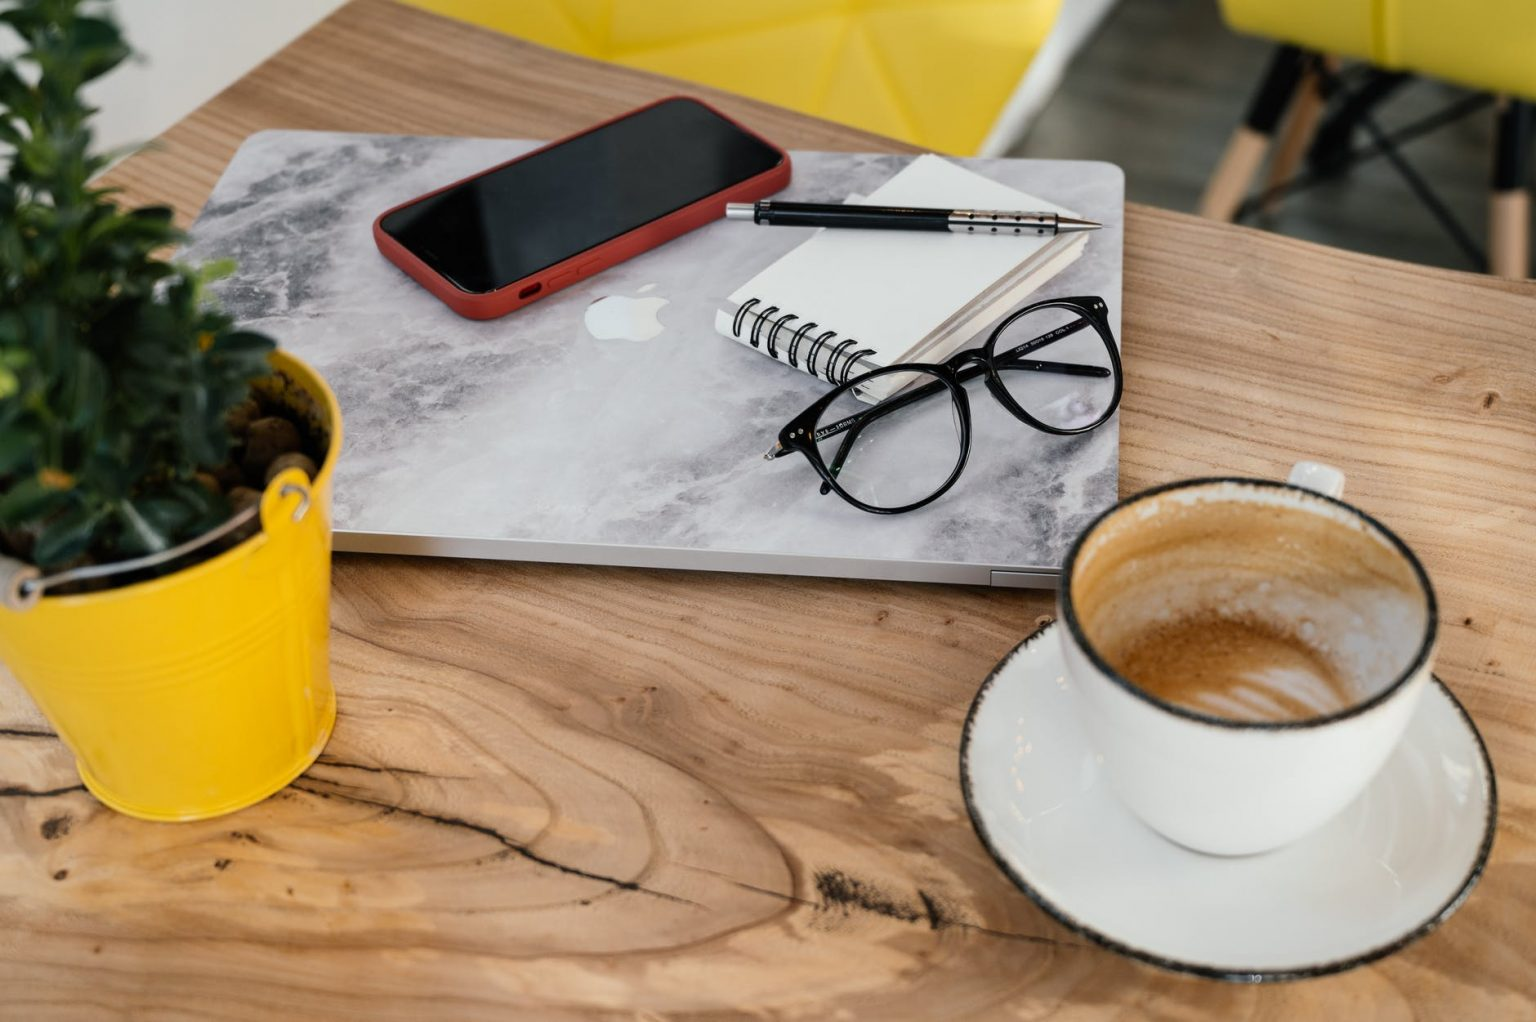 modern gadgets placed on table with cappuccino in cafeteria